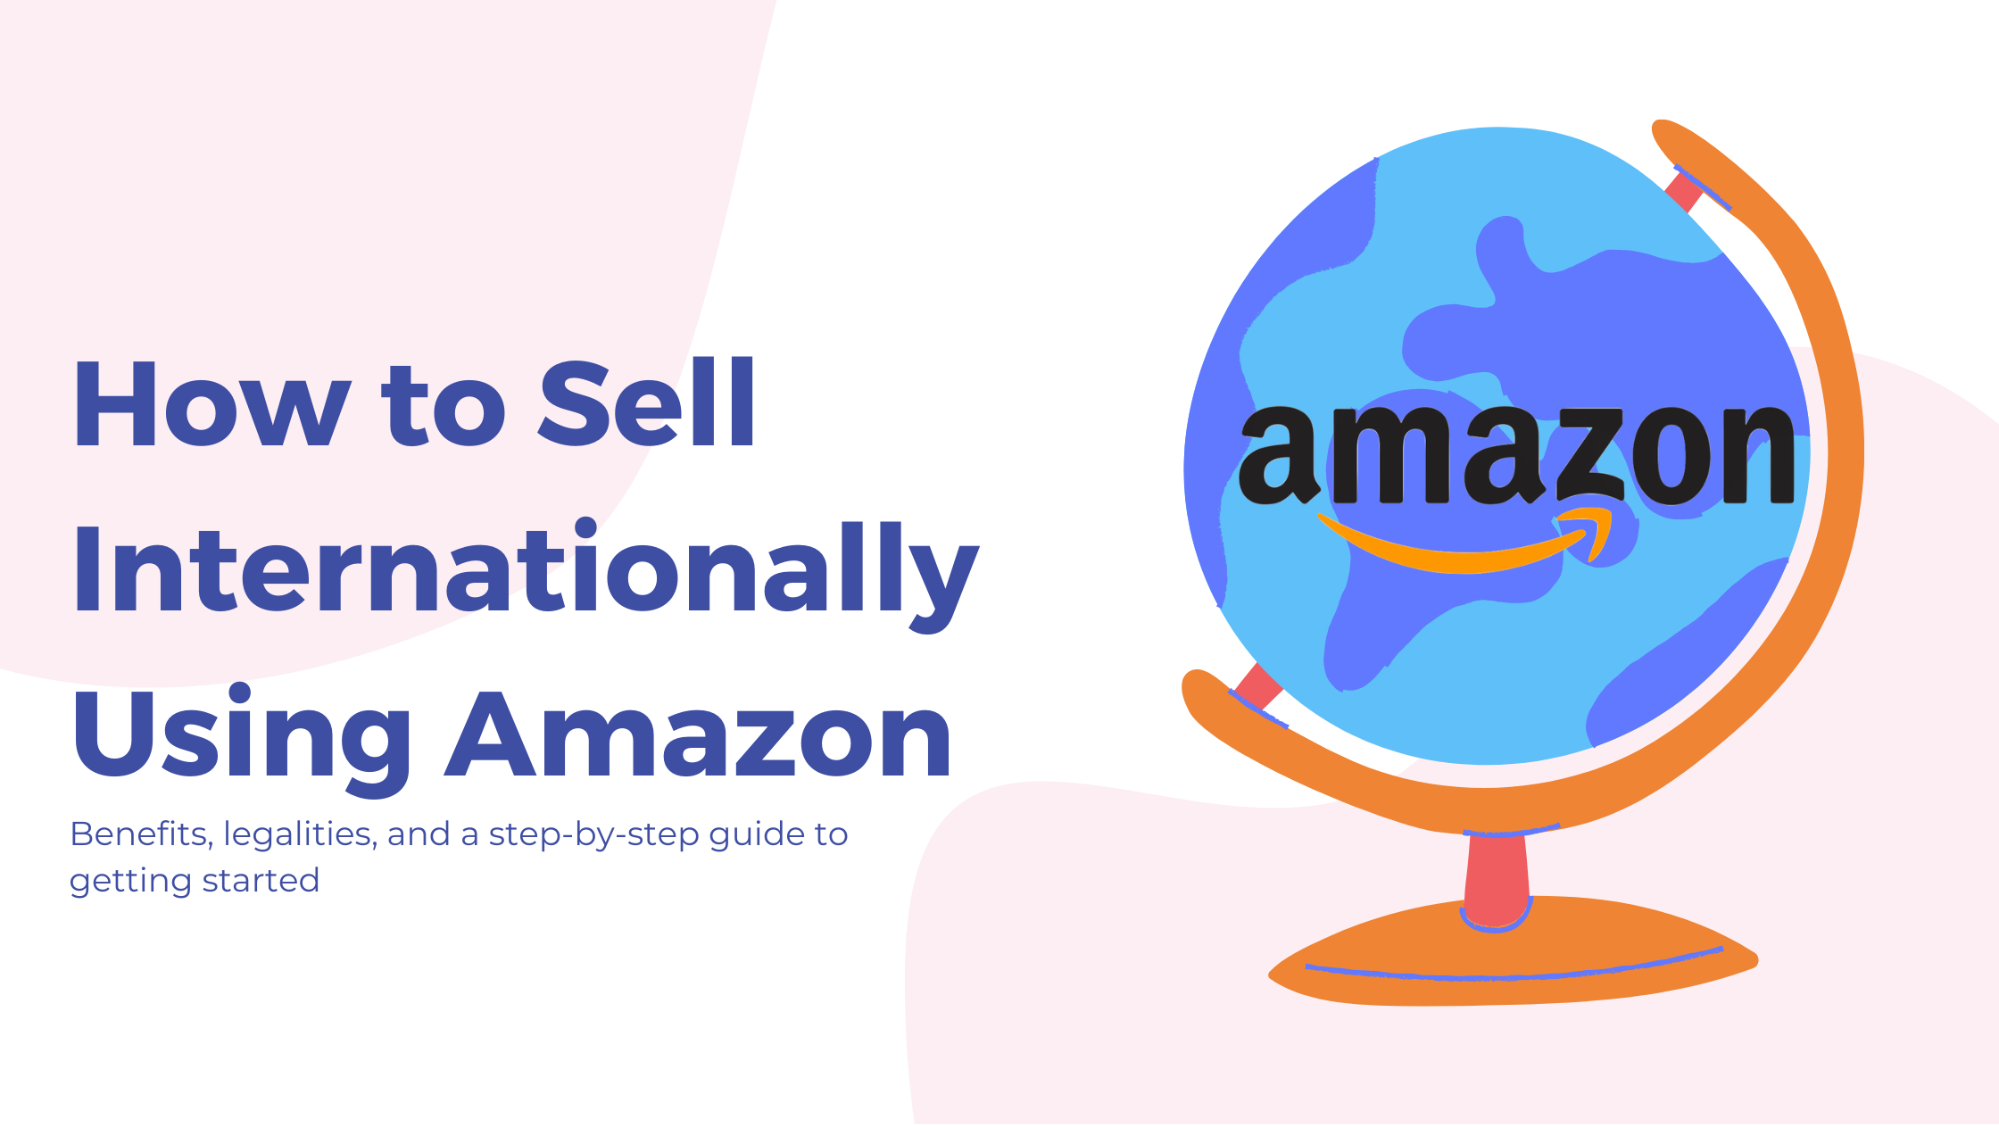 How to Sell Internationally Using Amazon